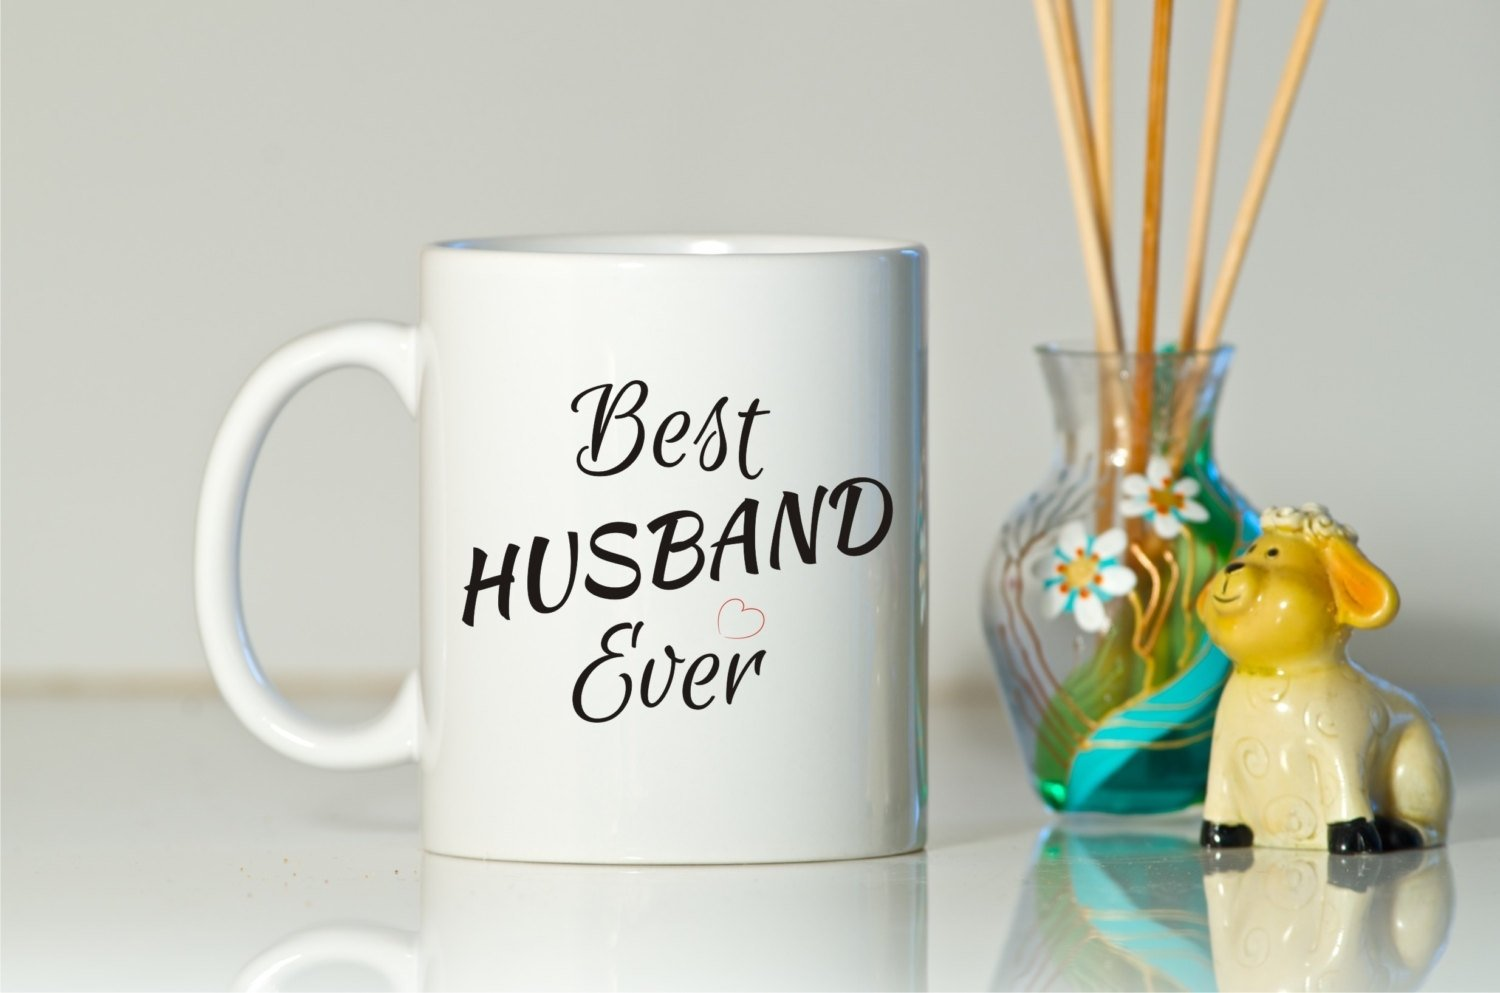 10 Fabulous Birthday Gift For Husband Ideas first birthday gift for husband wife after wedding marriage anniversary 1 2020